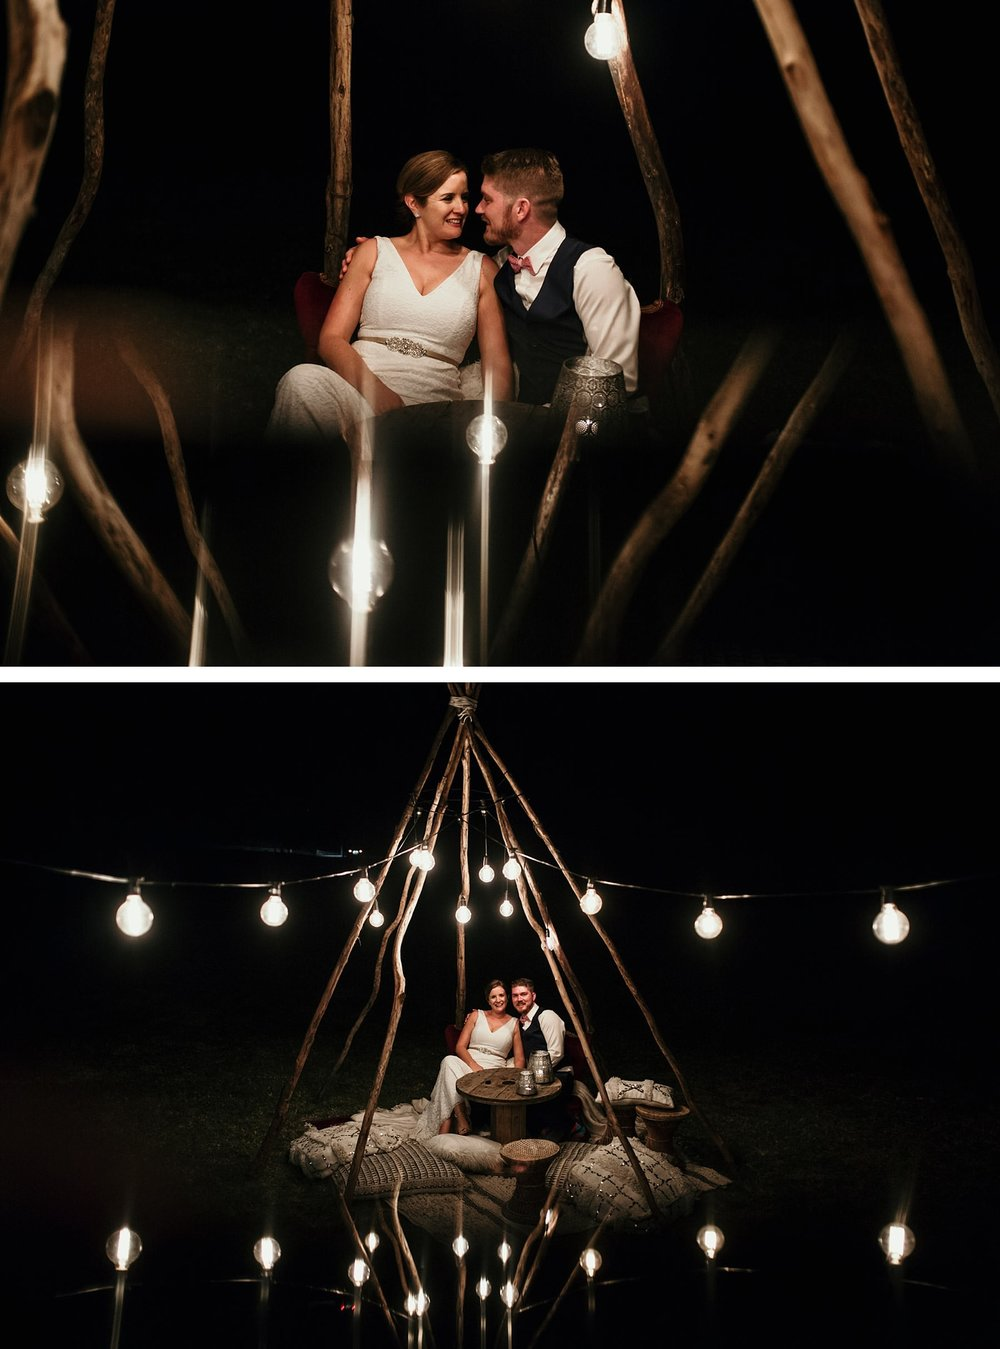 156Hunter Valley Wedding Photographers Bryce Noone Photography at Tocal Homestead Wedding Venue.jpg